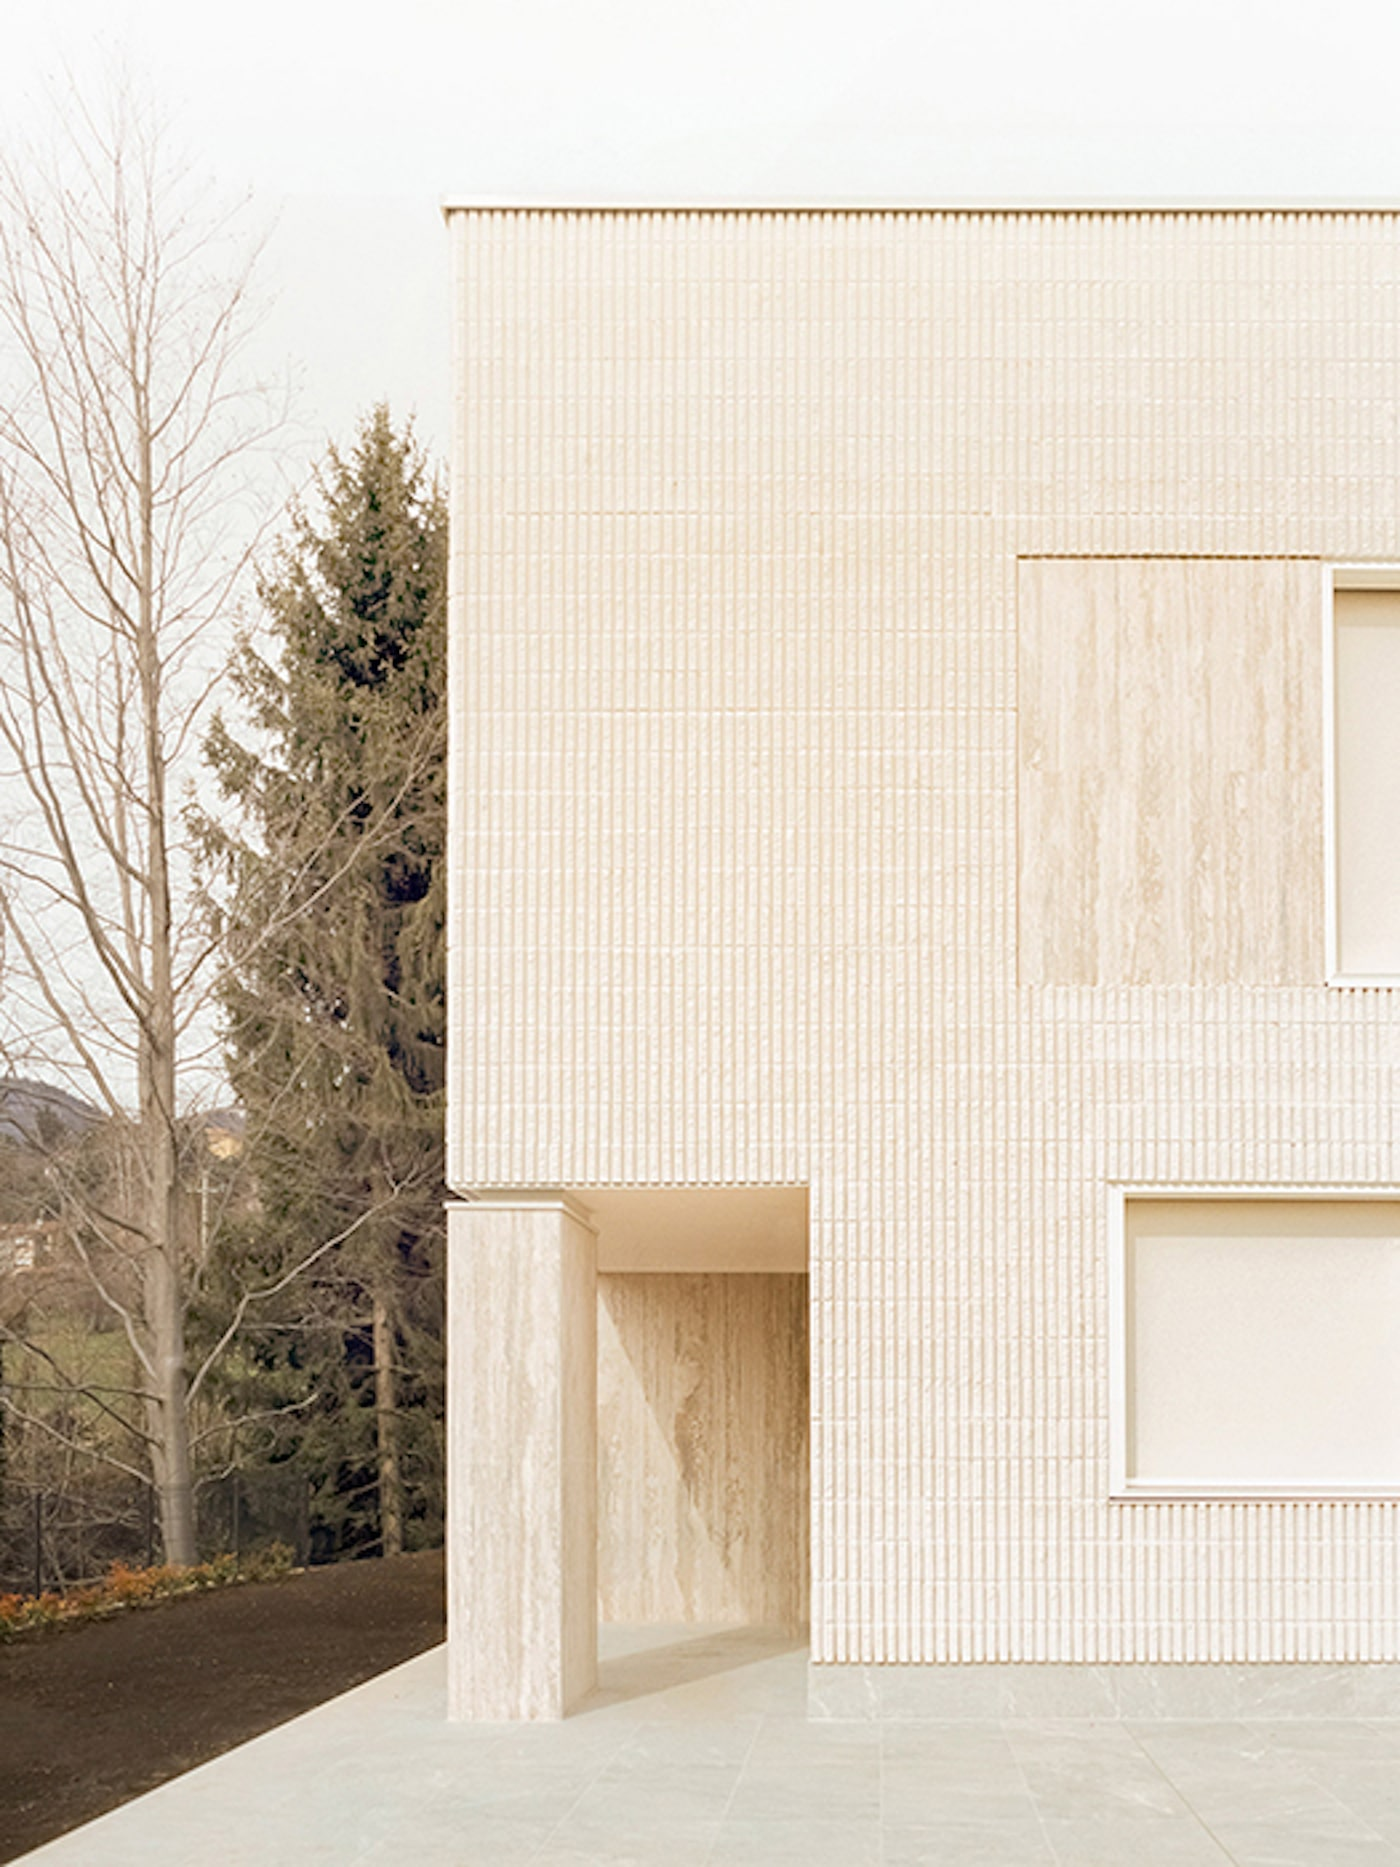 Timber facade of You are home apartments by Luca from LCA